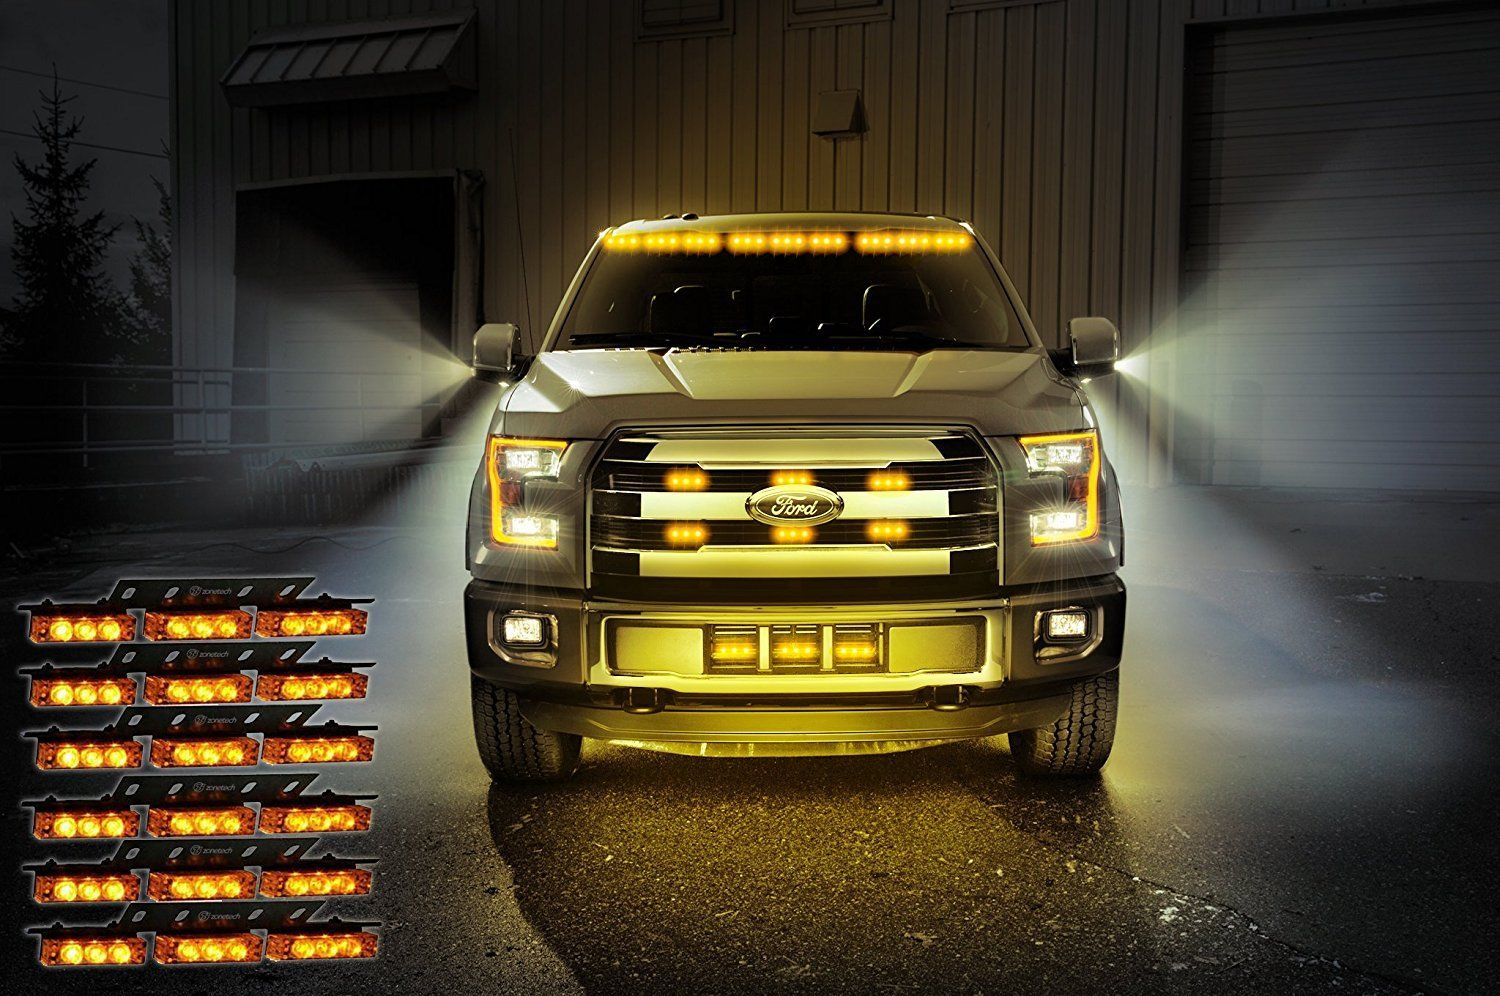 New 54 Strobe Led Light 12v Grill Emergency Lights 54str